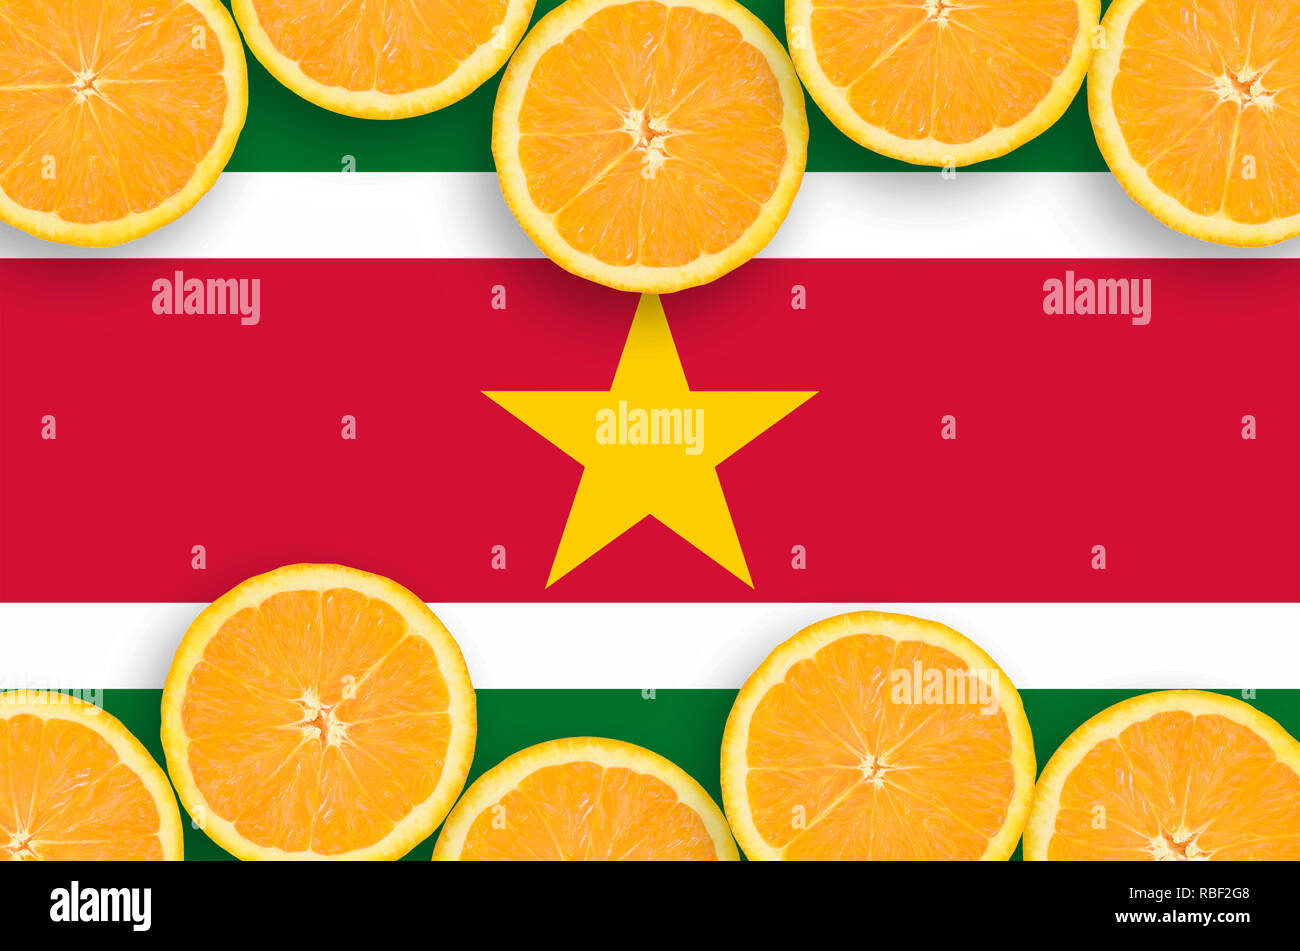 Suriname flag  in horizontal frame of orange citrus fruit slices. Concept of growing as well as import and export of citrus fruits - Stock Image